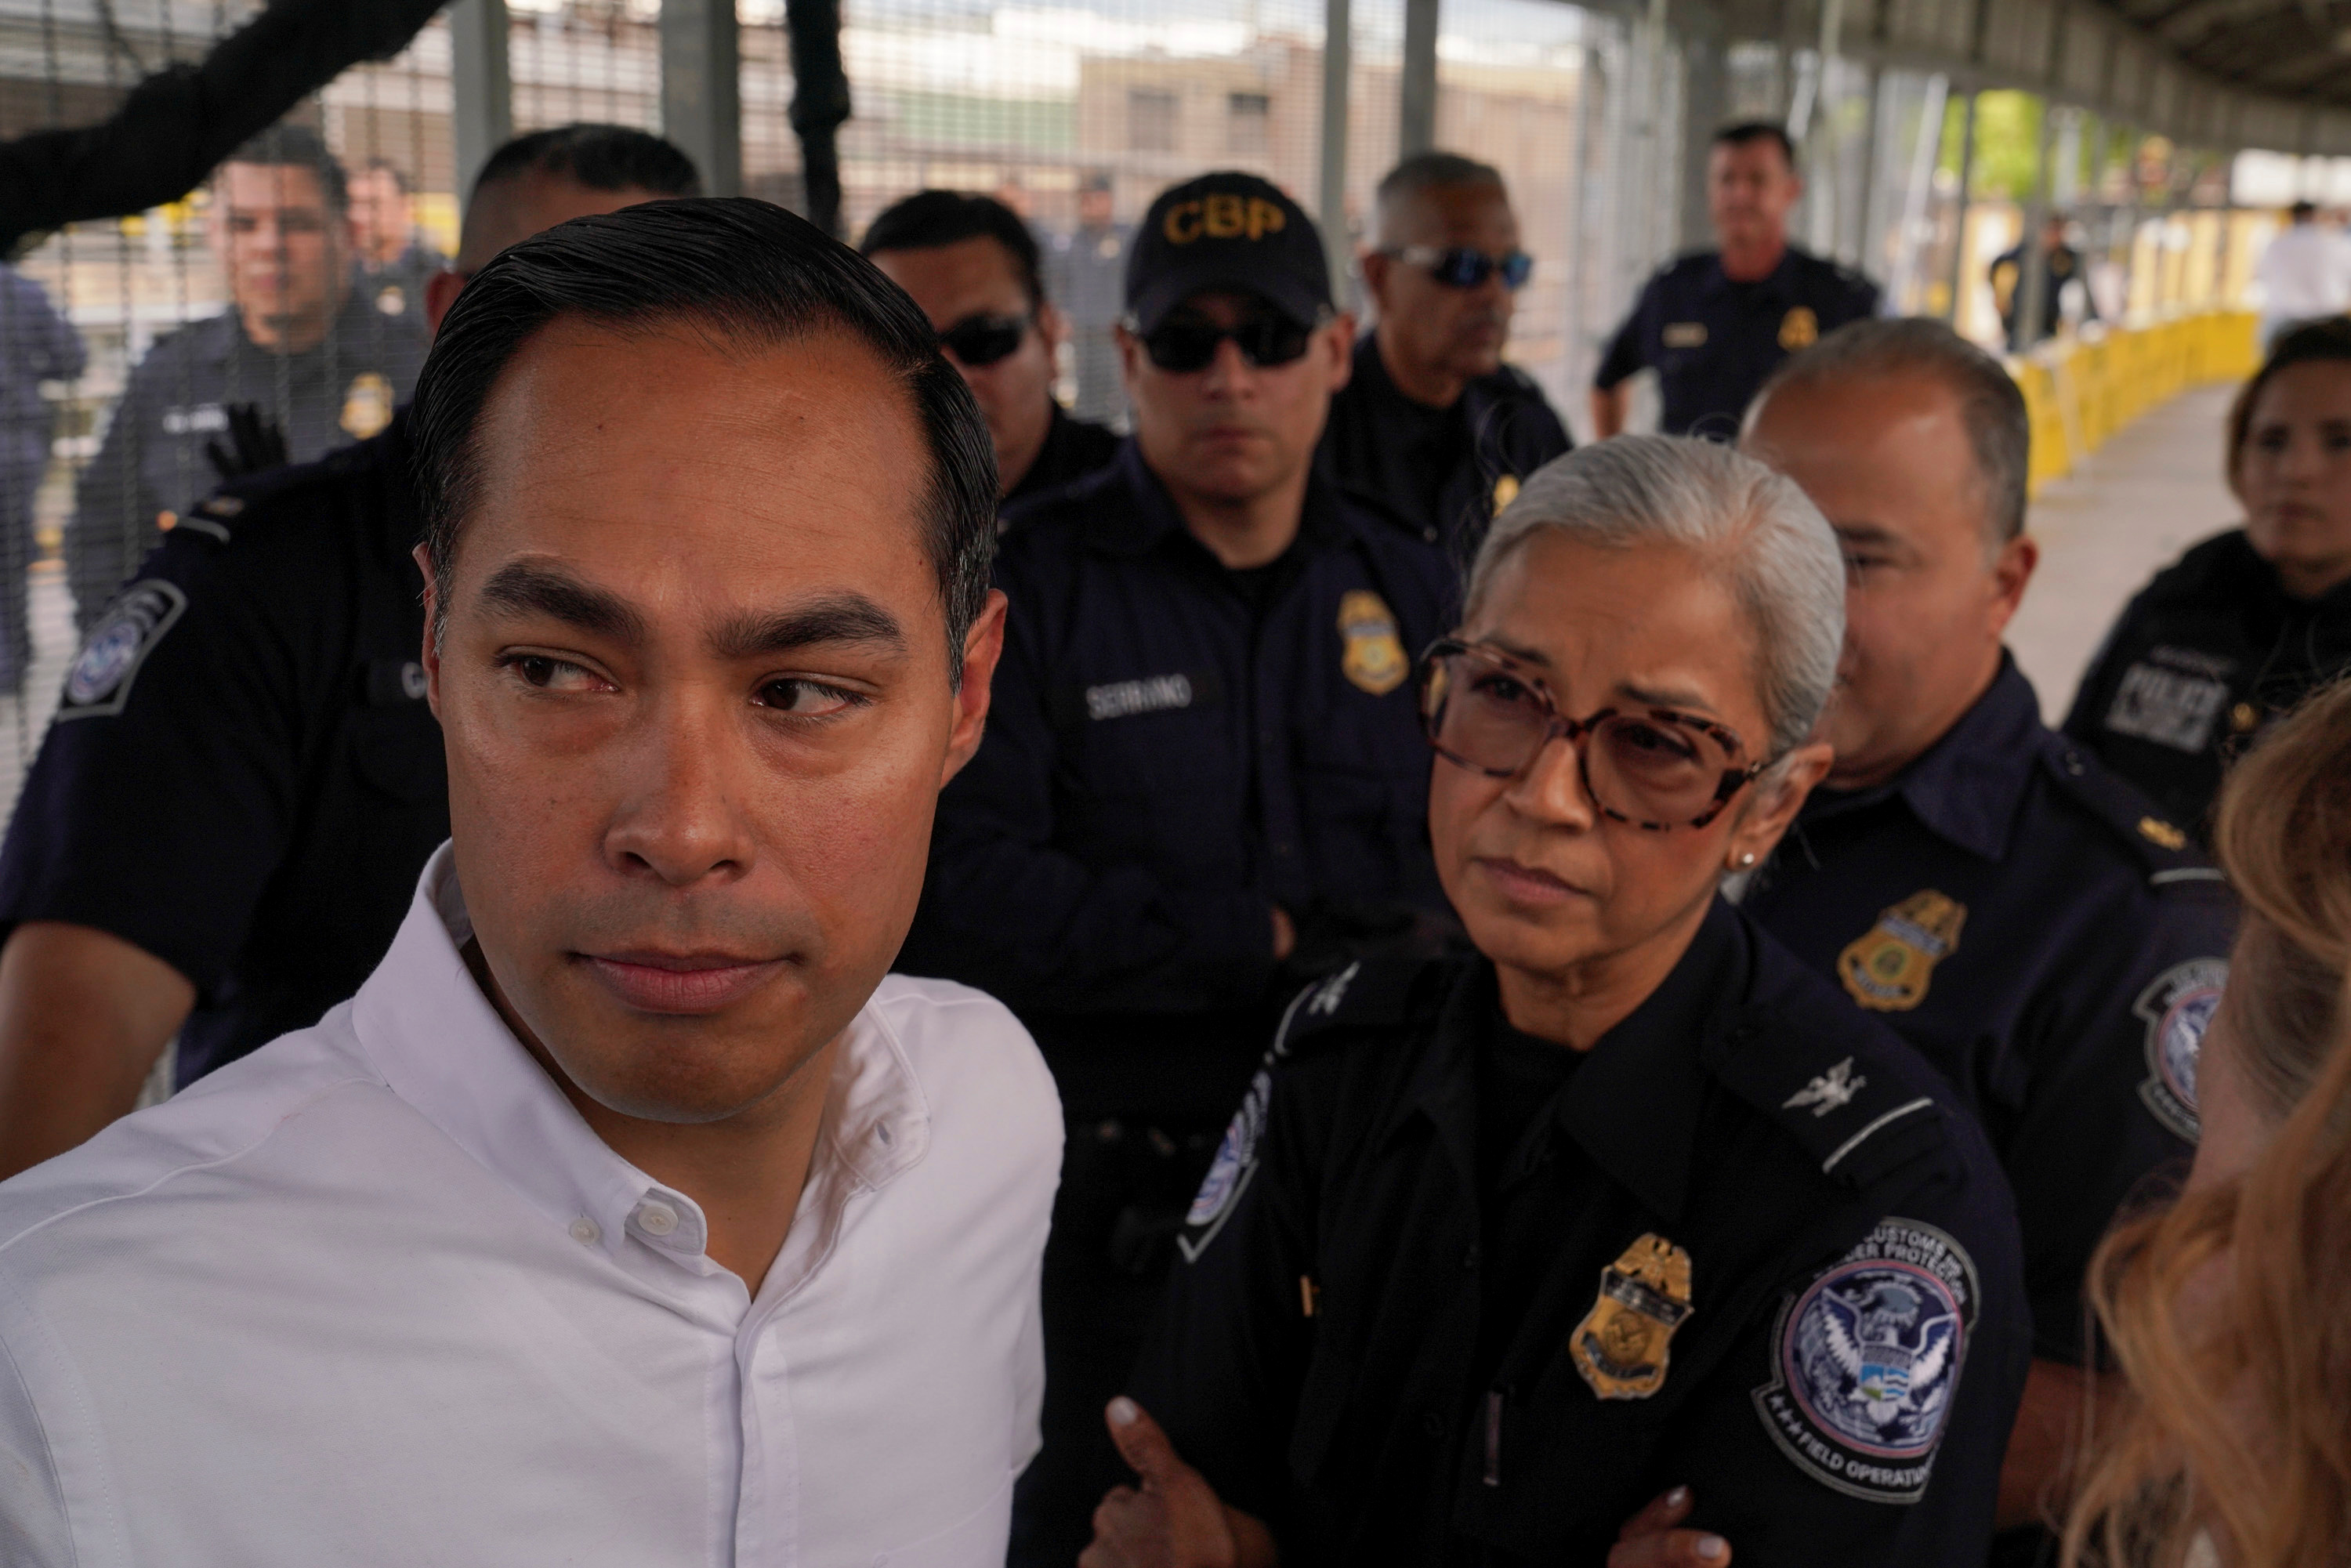 Democratic presidential candidate Former HUD Secretary Julian Castro walks over asylum seekers who have been sent back under the Migrant Protection Protocols (MPP) to try to get them exempt so they can continue their case in the U.S. in Matamoros